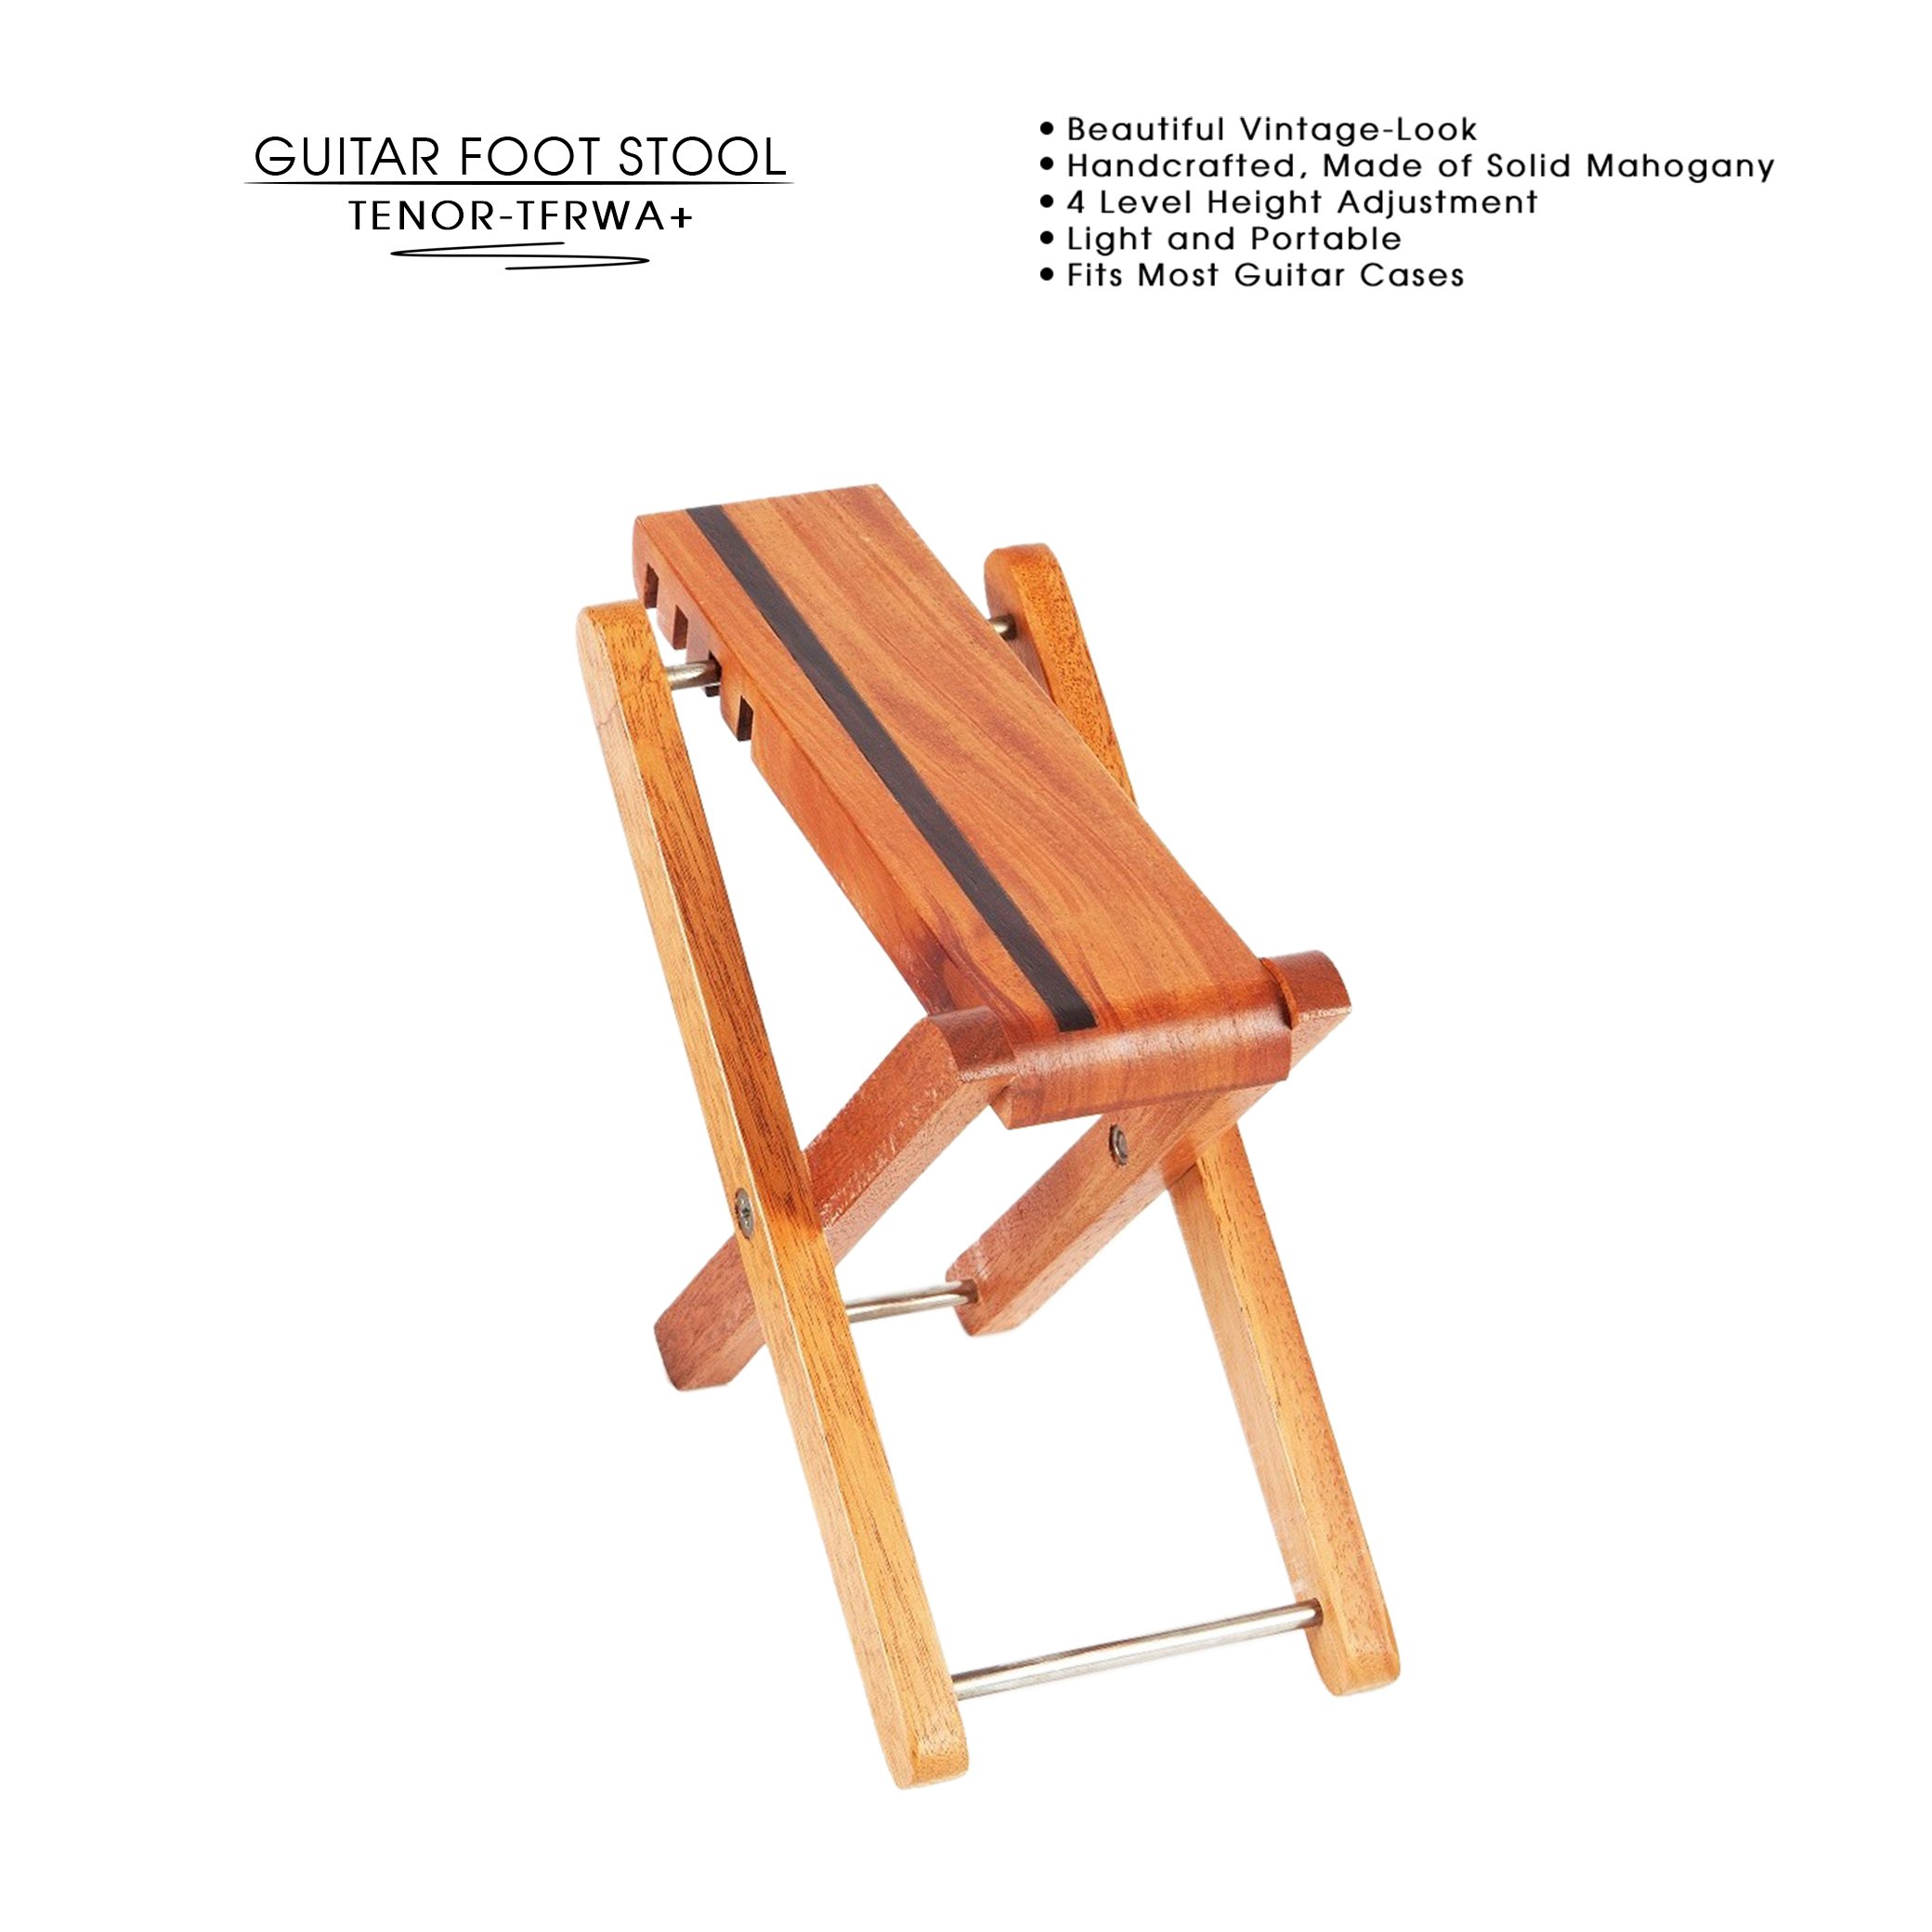 TENOR TFRWA+ The Most Beautiful Guitar Foot Stool in The Market! Wooden, Handcrafted, Professional, Solid Foot Rest, Footstool, Guitar Support. For Classical, Flamenco, Acoustic or Electric Players.